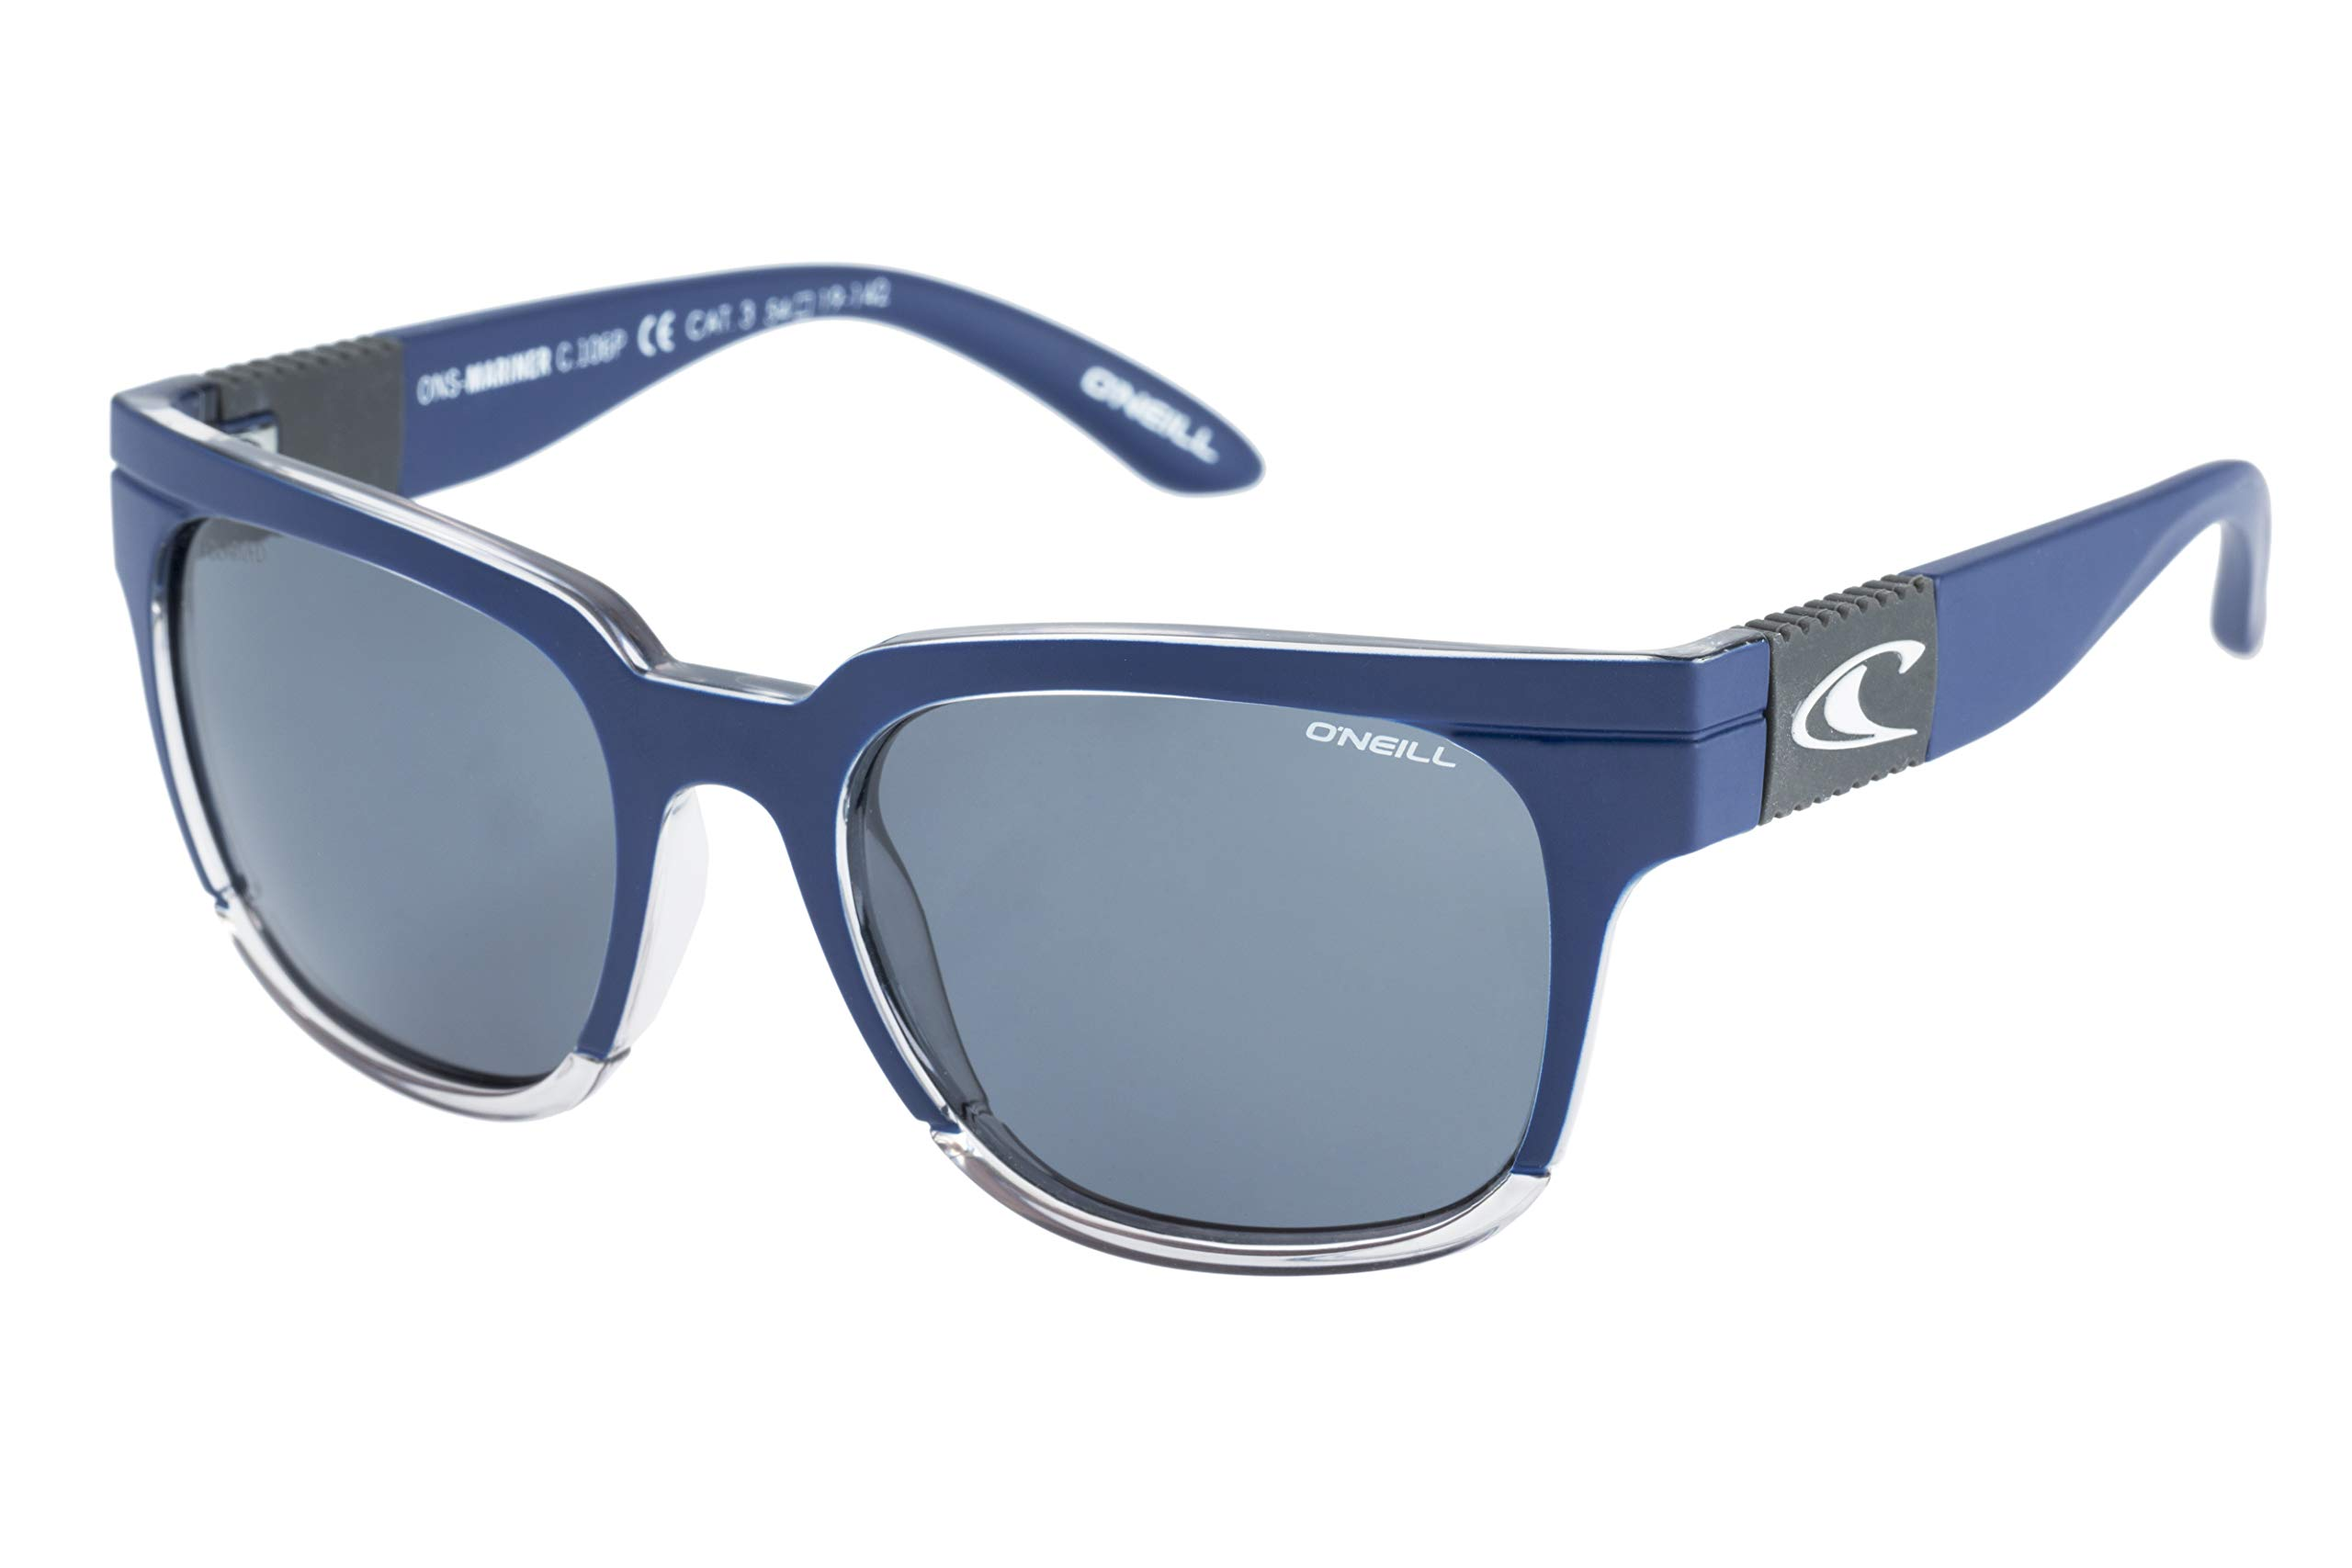 O'Neill Unisex-Adult Mariner 106P Polarized Square Sunglasses, Matte Navy/Gray, 54 mm by O'Neill